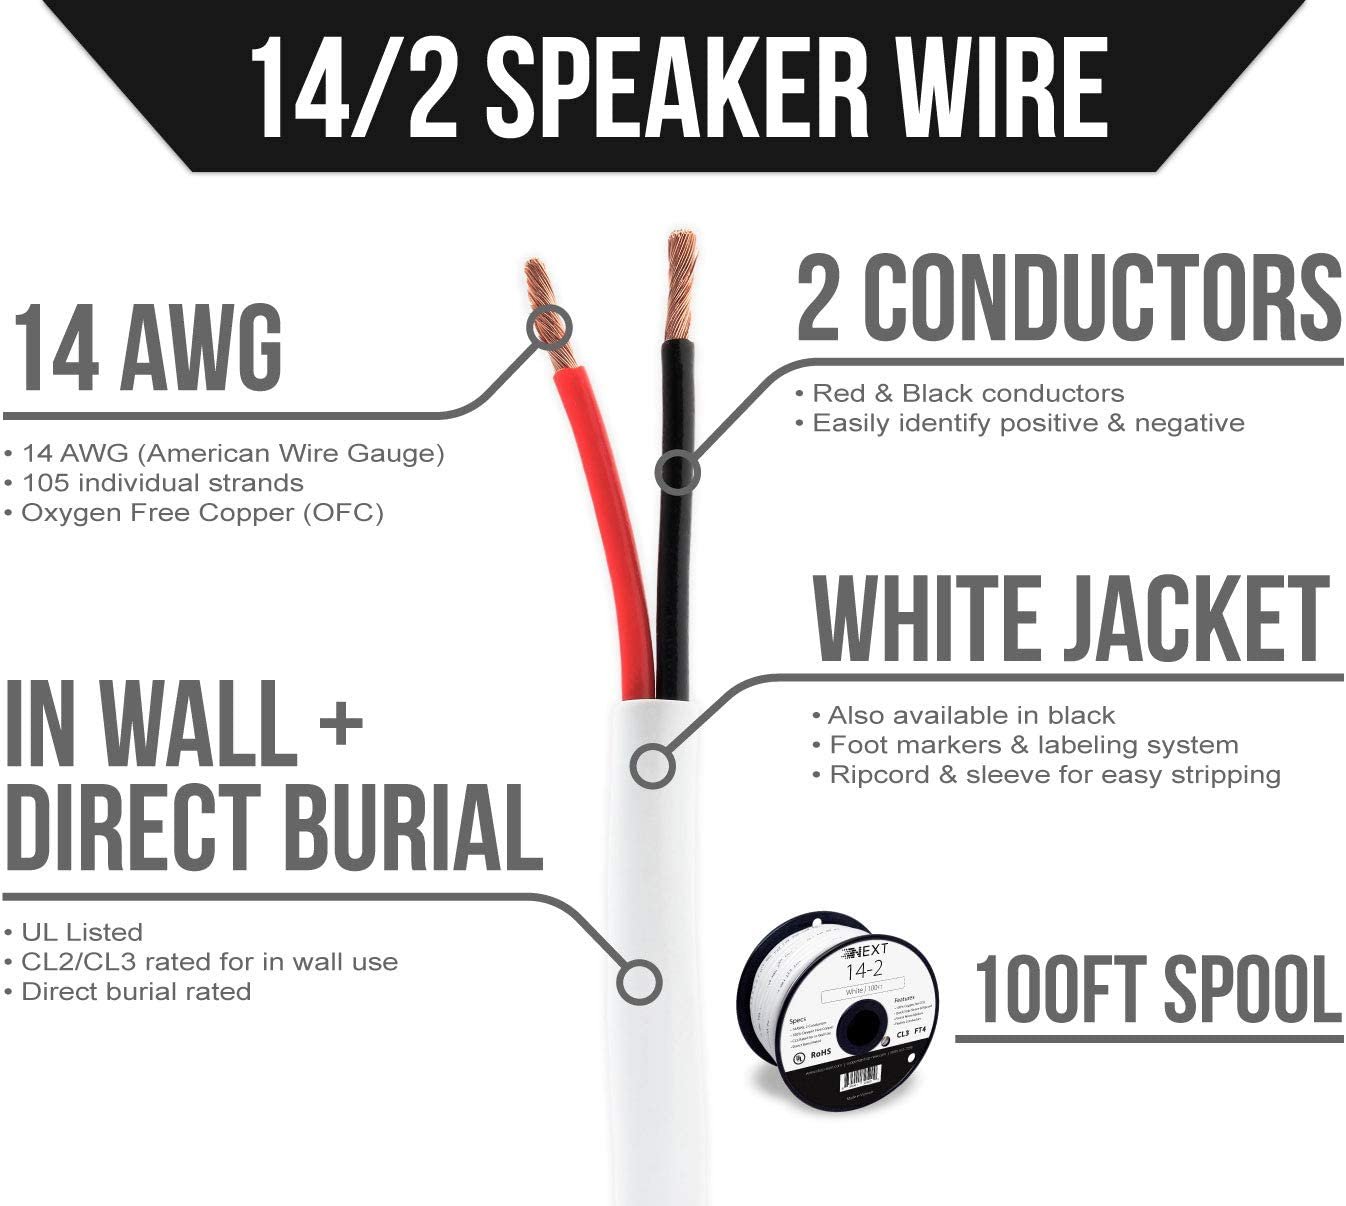 Next 14//2 Speaker Wire Rated Oxygen-Free Copper OFC 14 AWG//Gauge 2 Conductor - 100 Foot Cable Spool and Outdoor//In Ground White Direct Burial UL Listed in Wall CL2//CL3